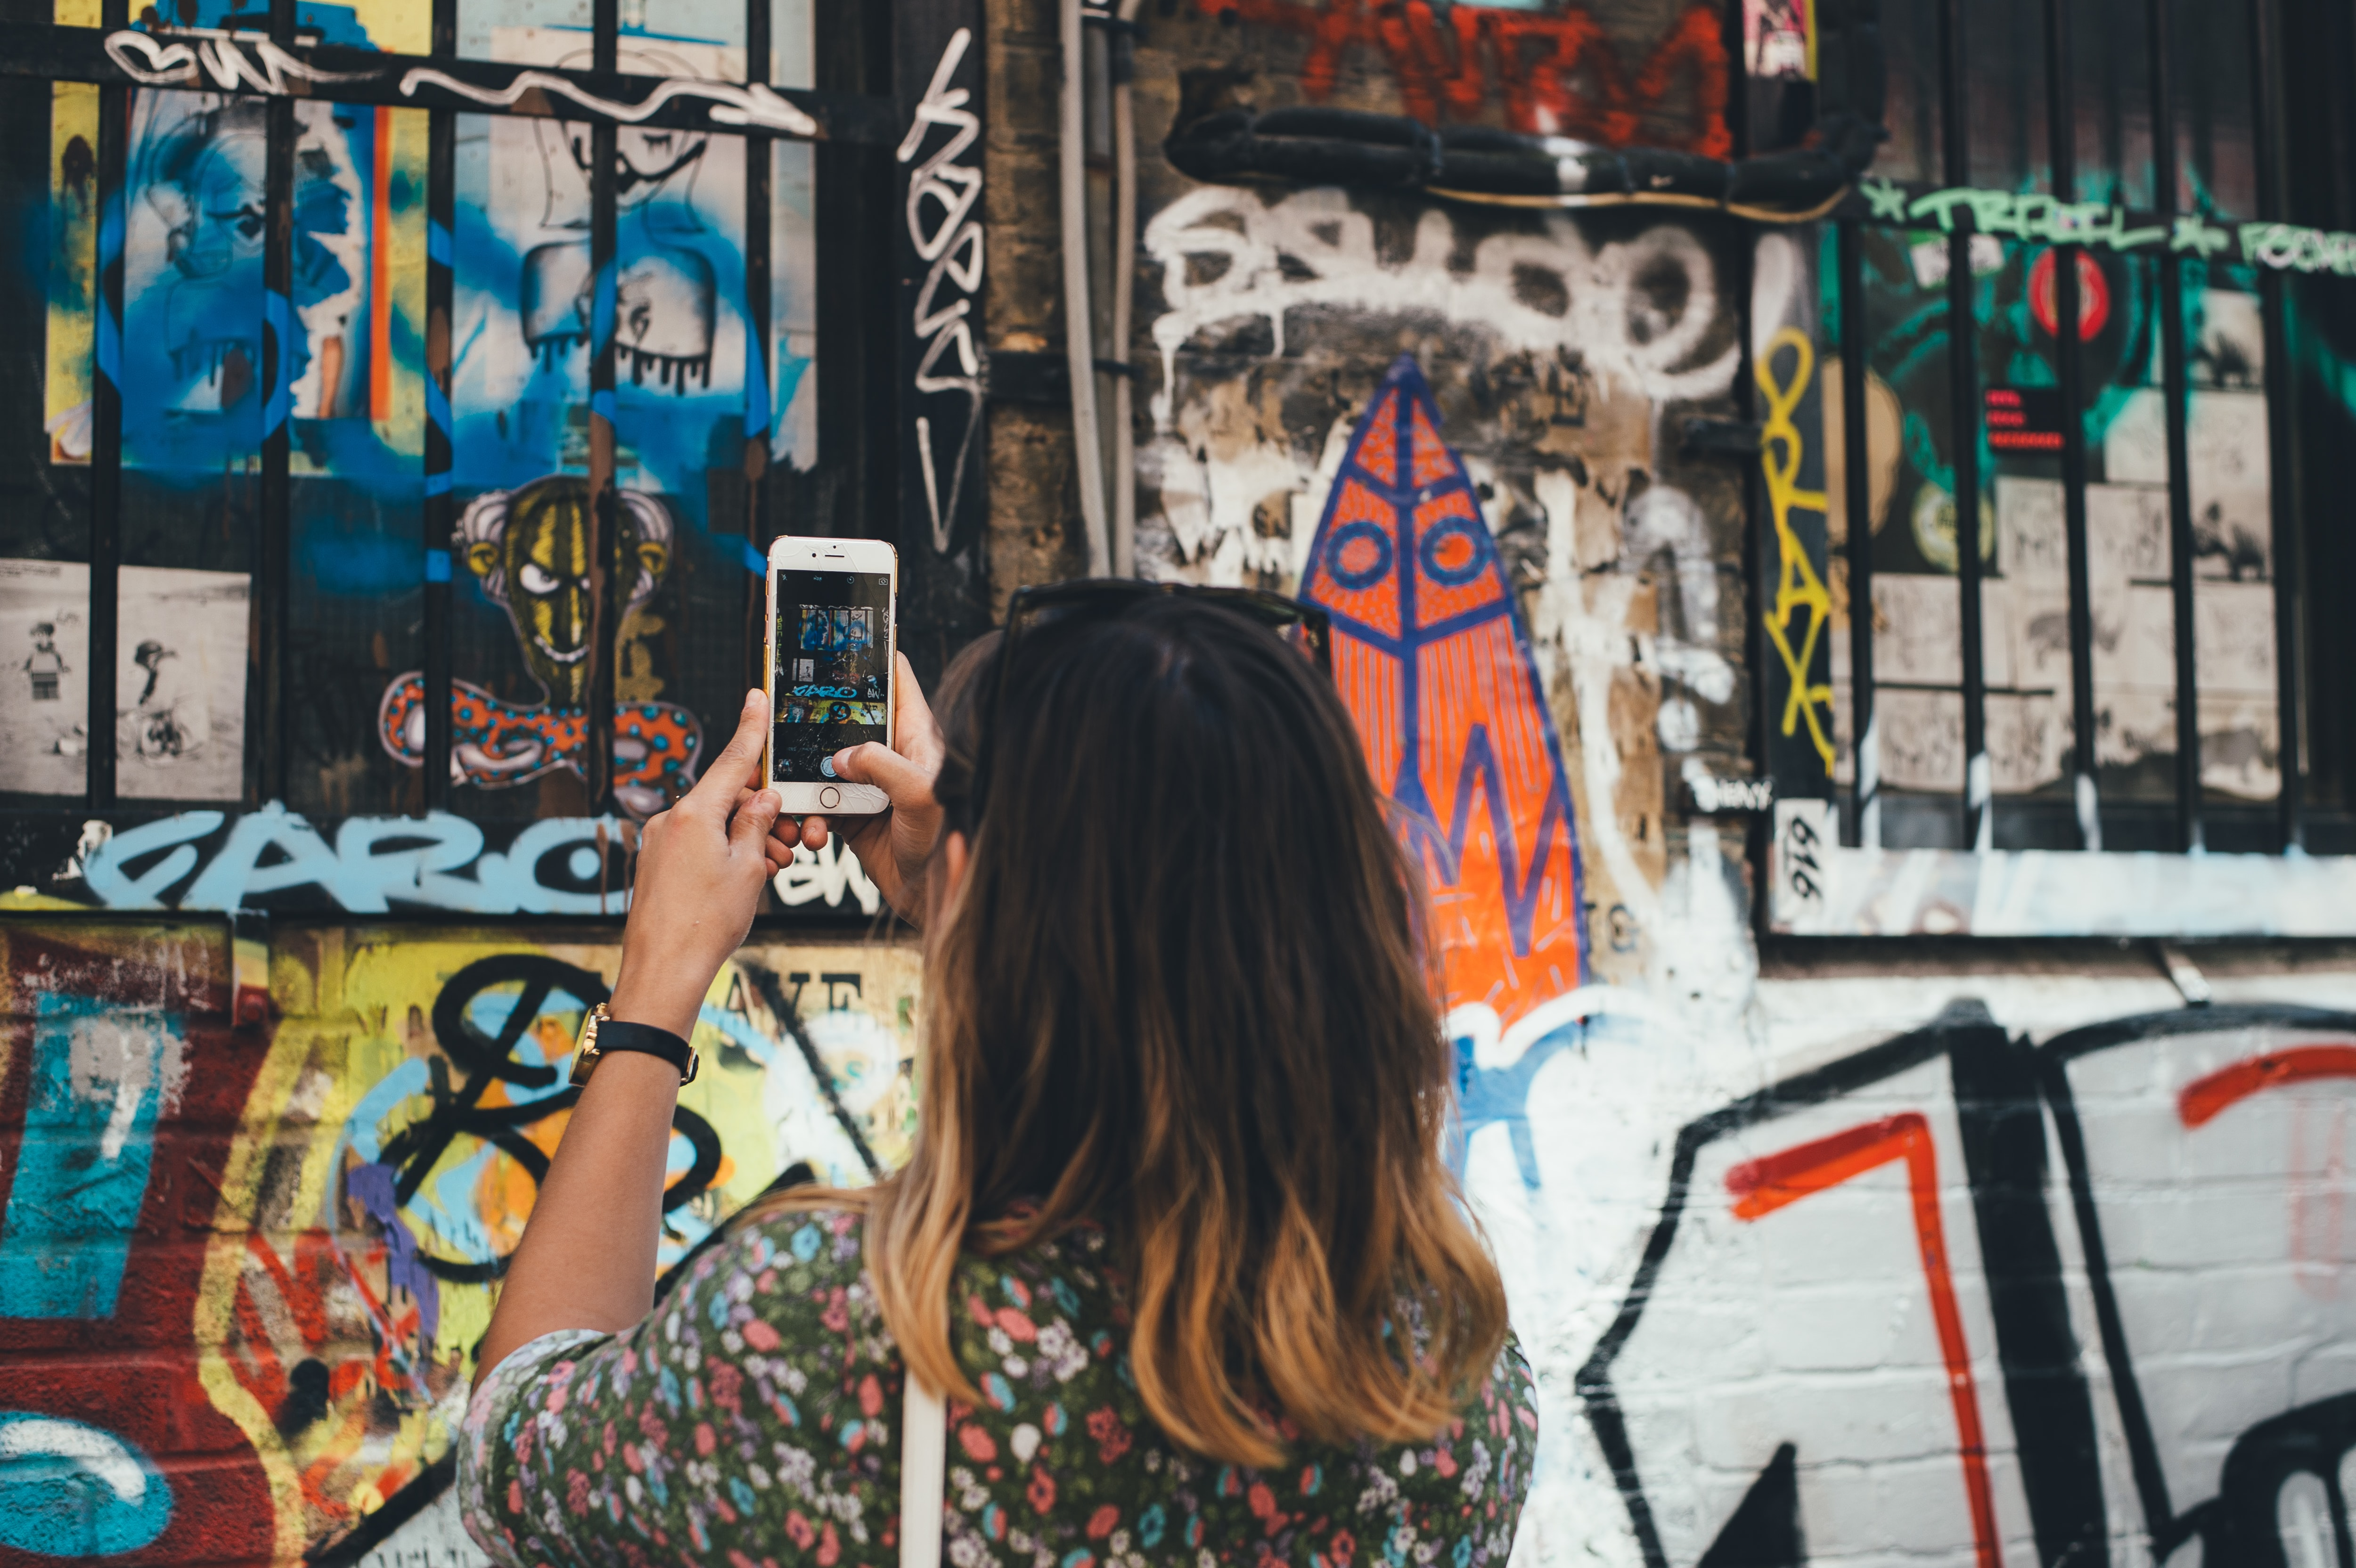 Woman in Shoreditch taking picture of graffiti art on brick wall with iron windows